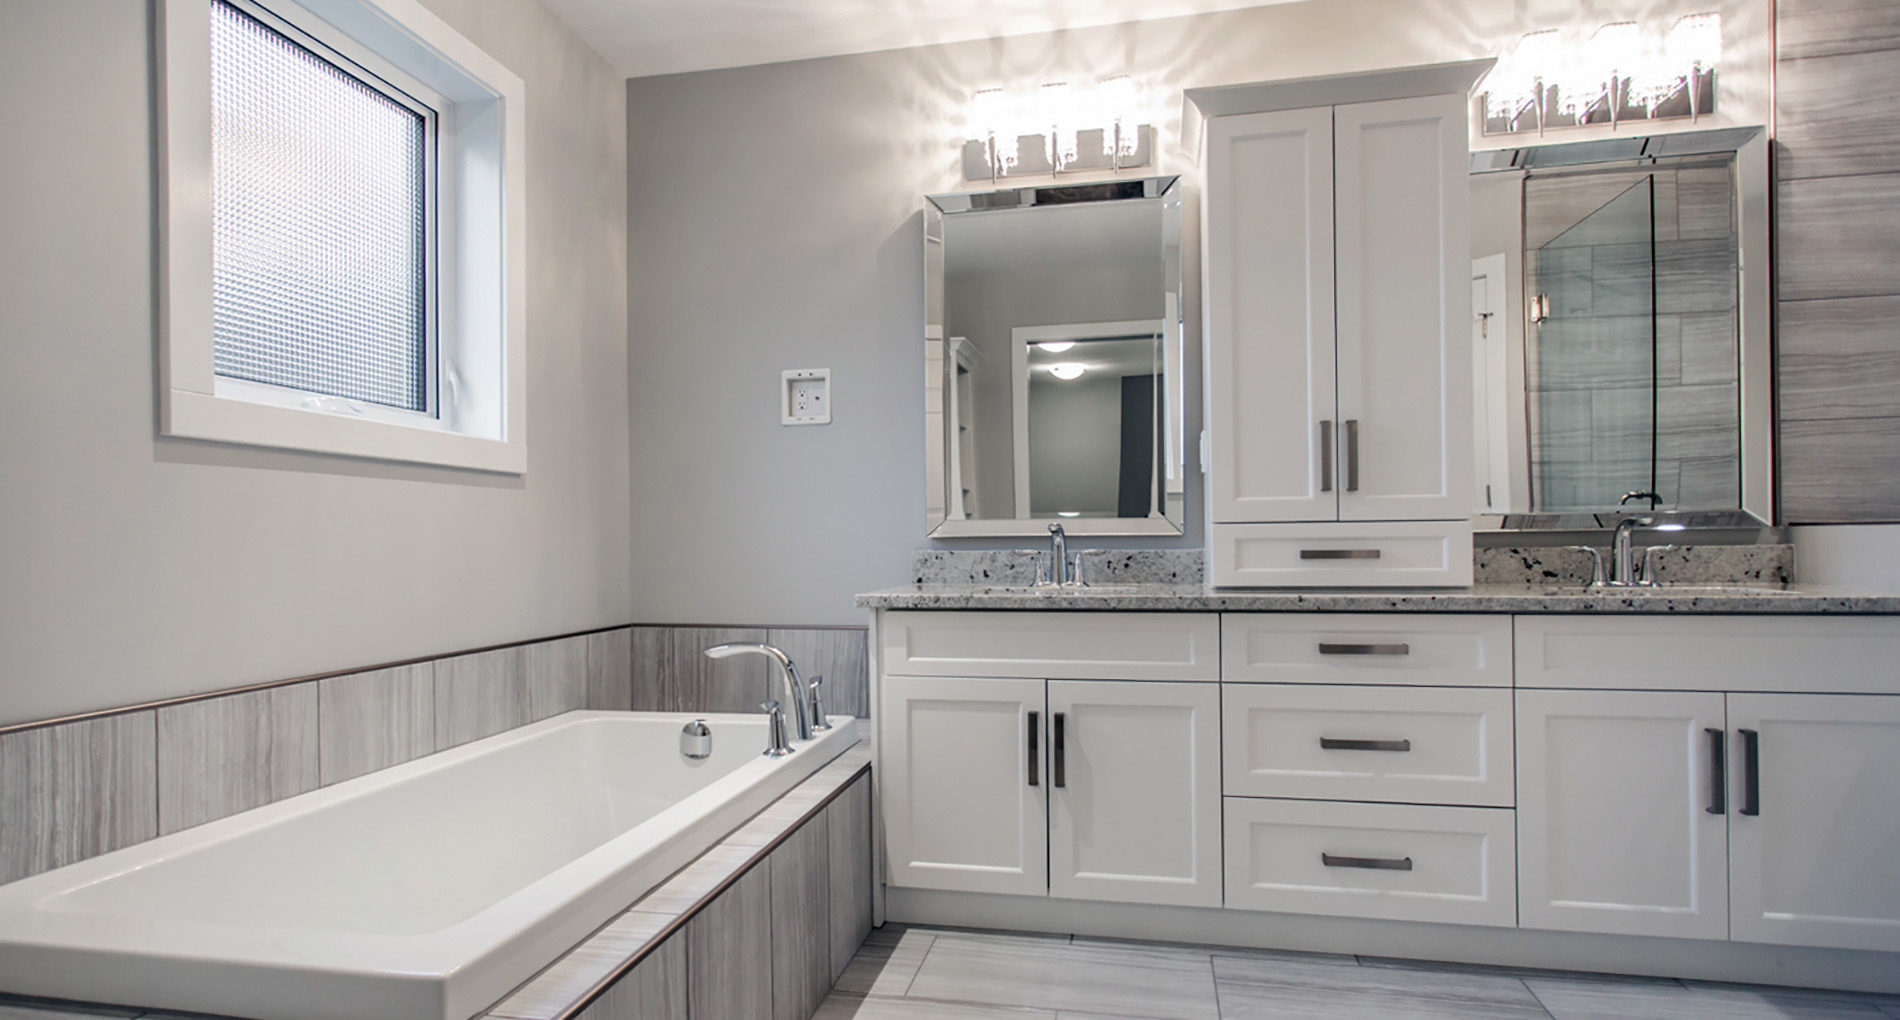 Bathroom Renovation Winnipeg 2027windsorplace Slider